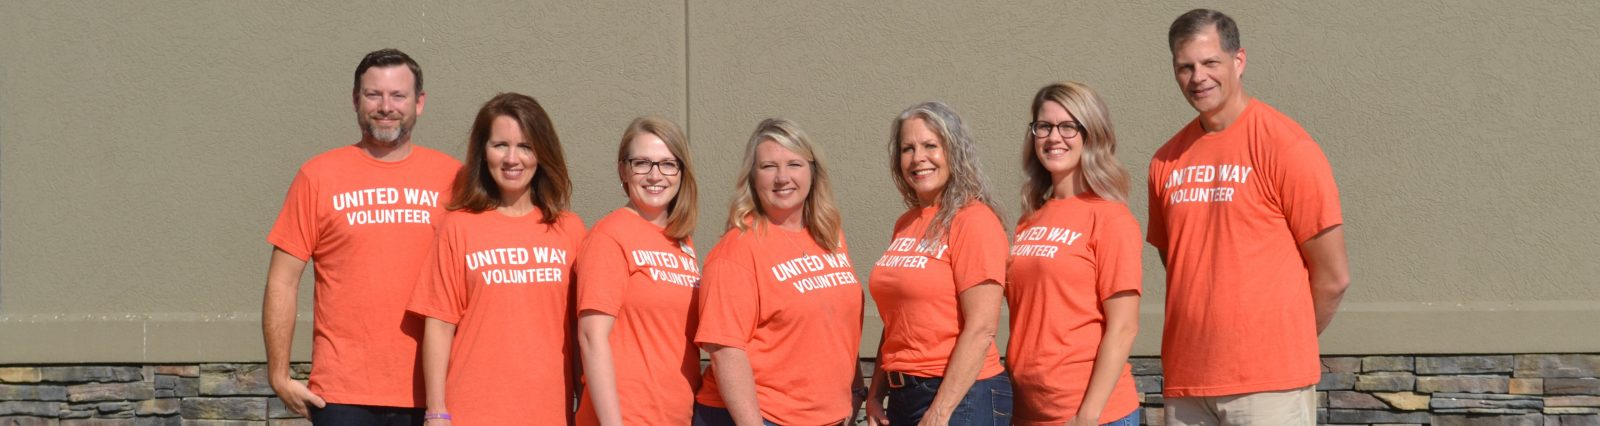 Community - group of people in United Way Serve shirts